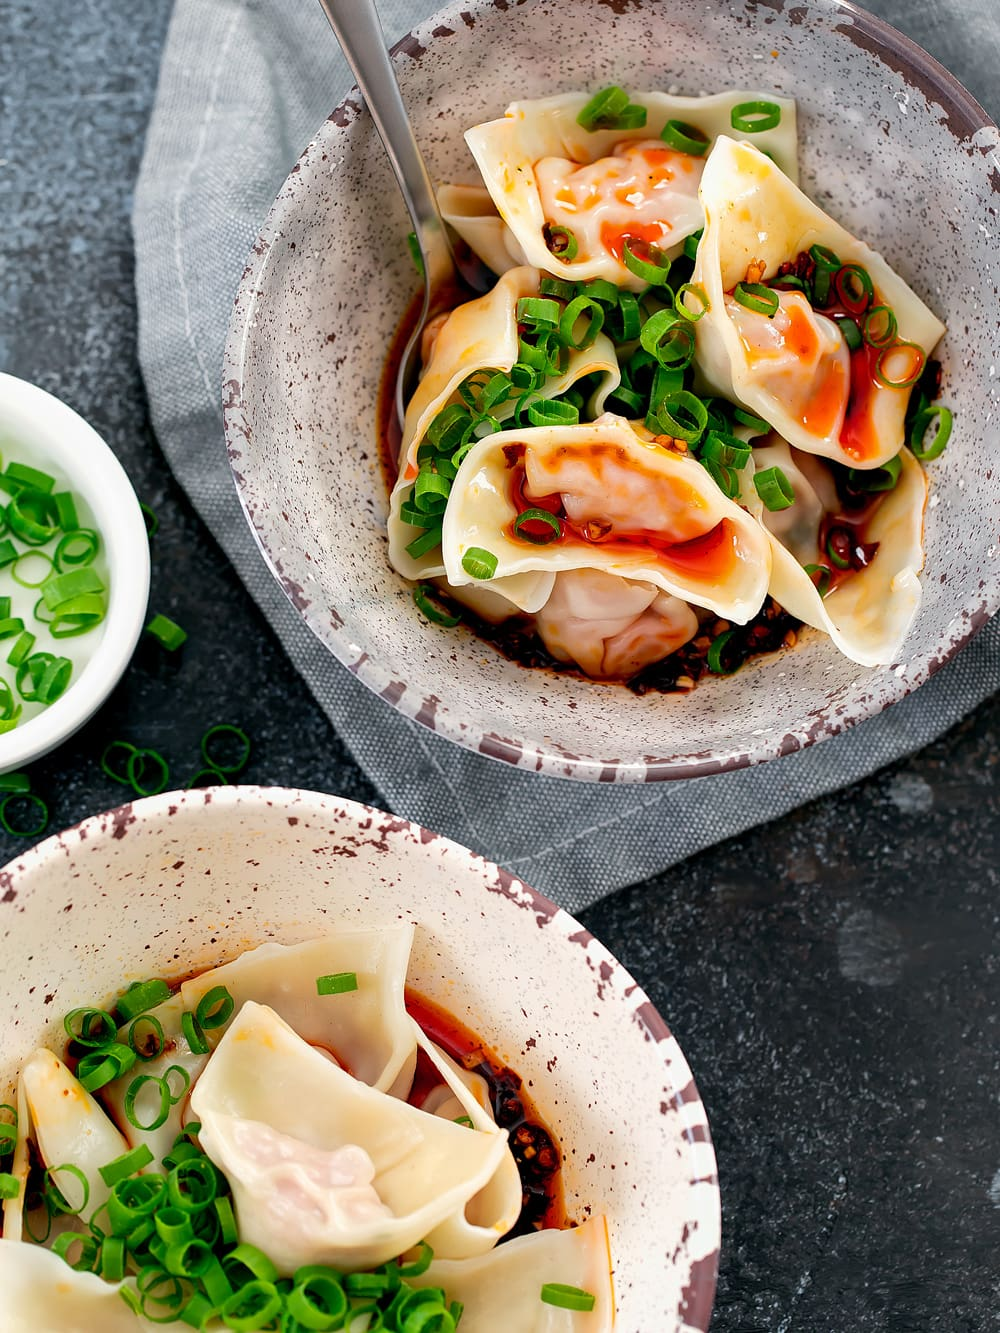 Sichuan Spicy Wontons